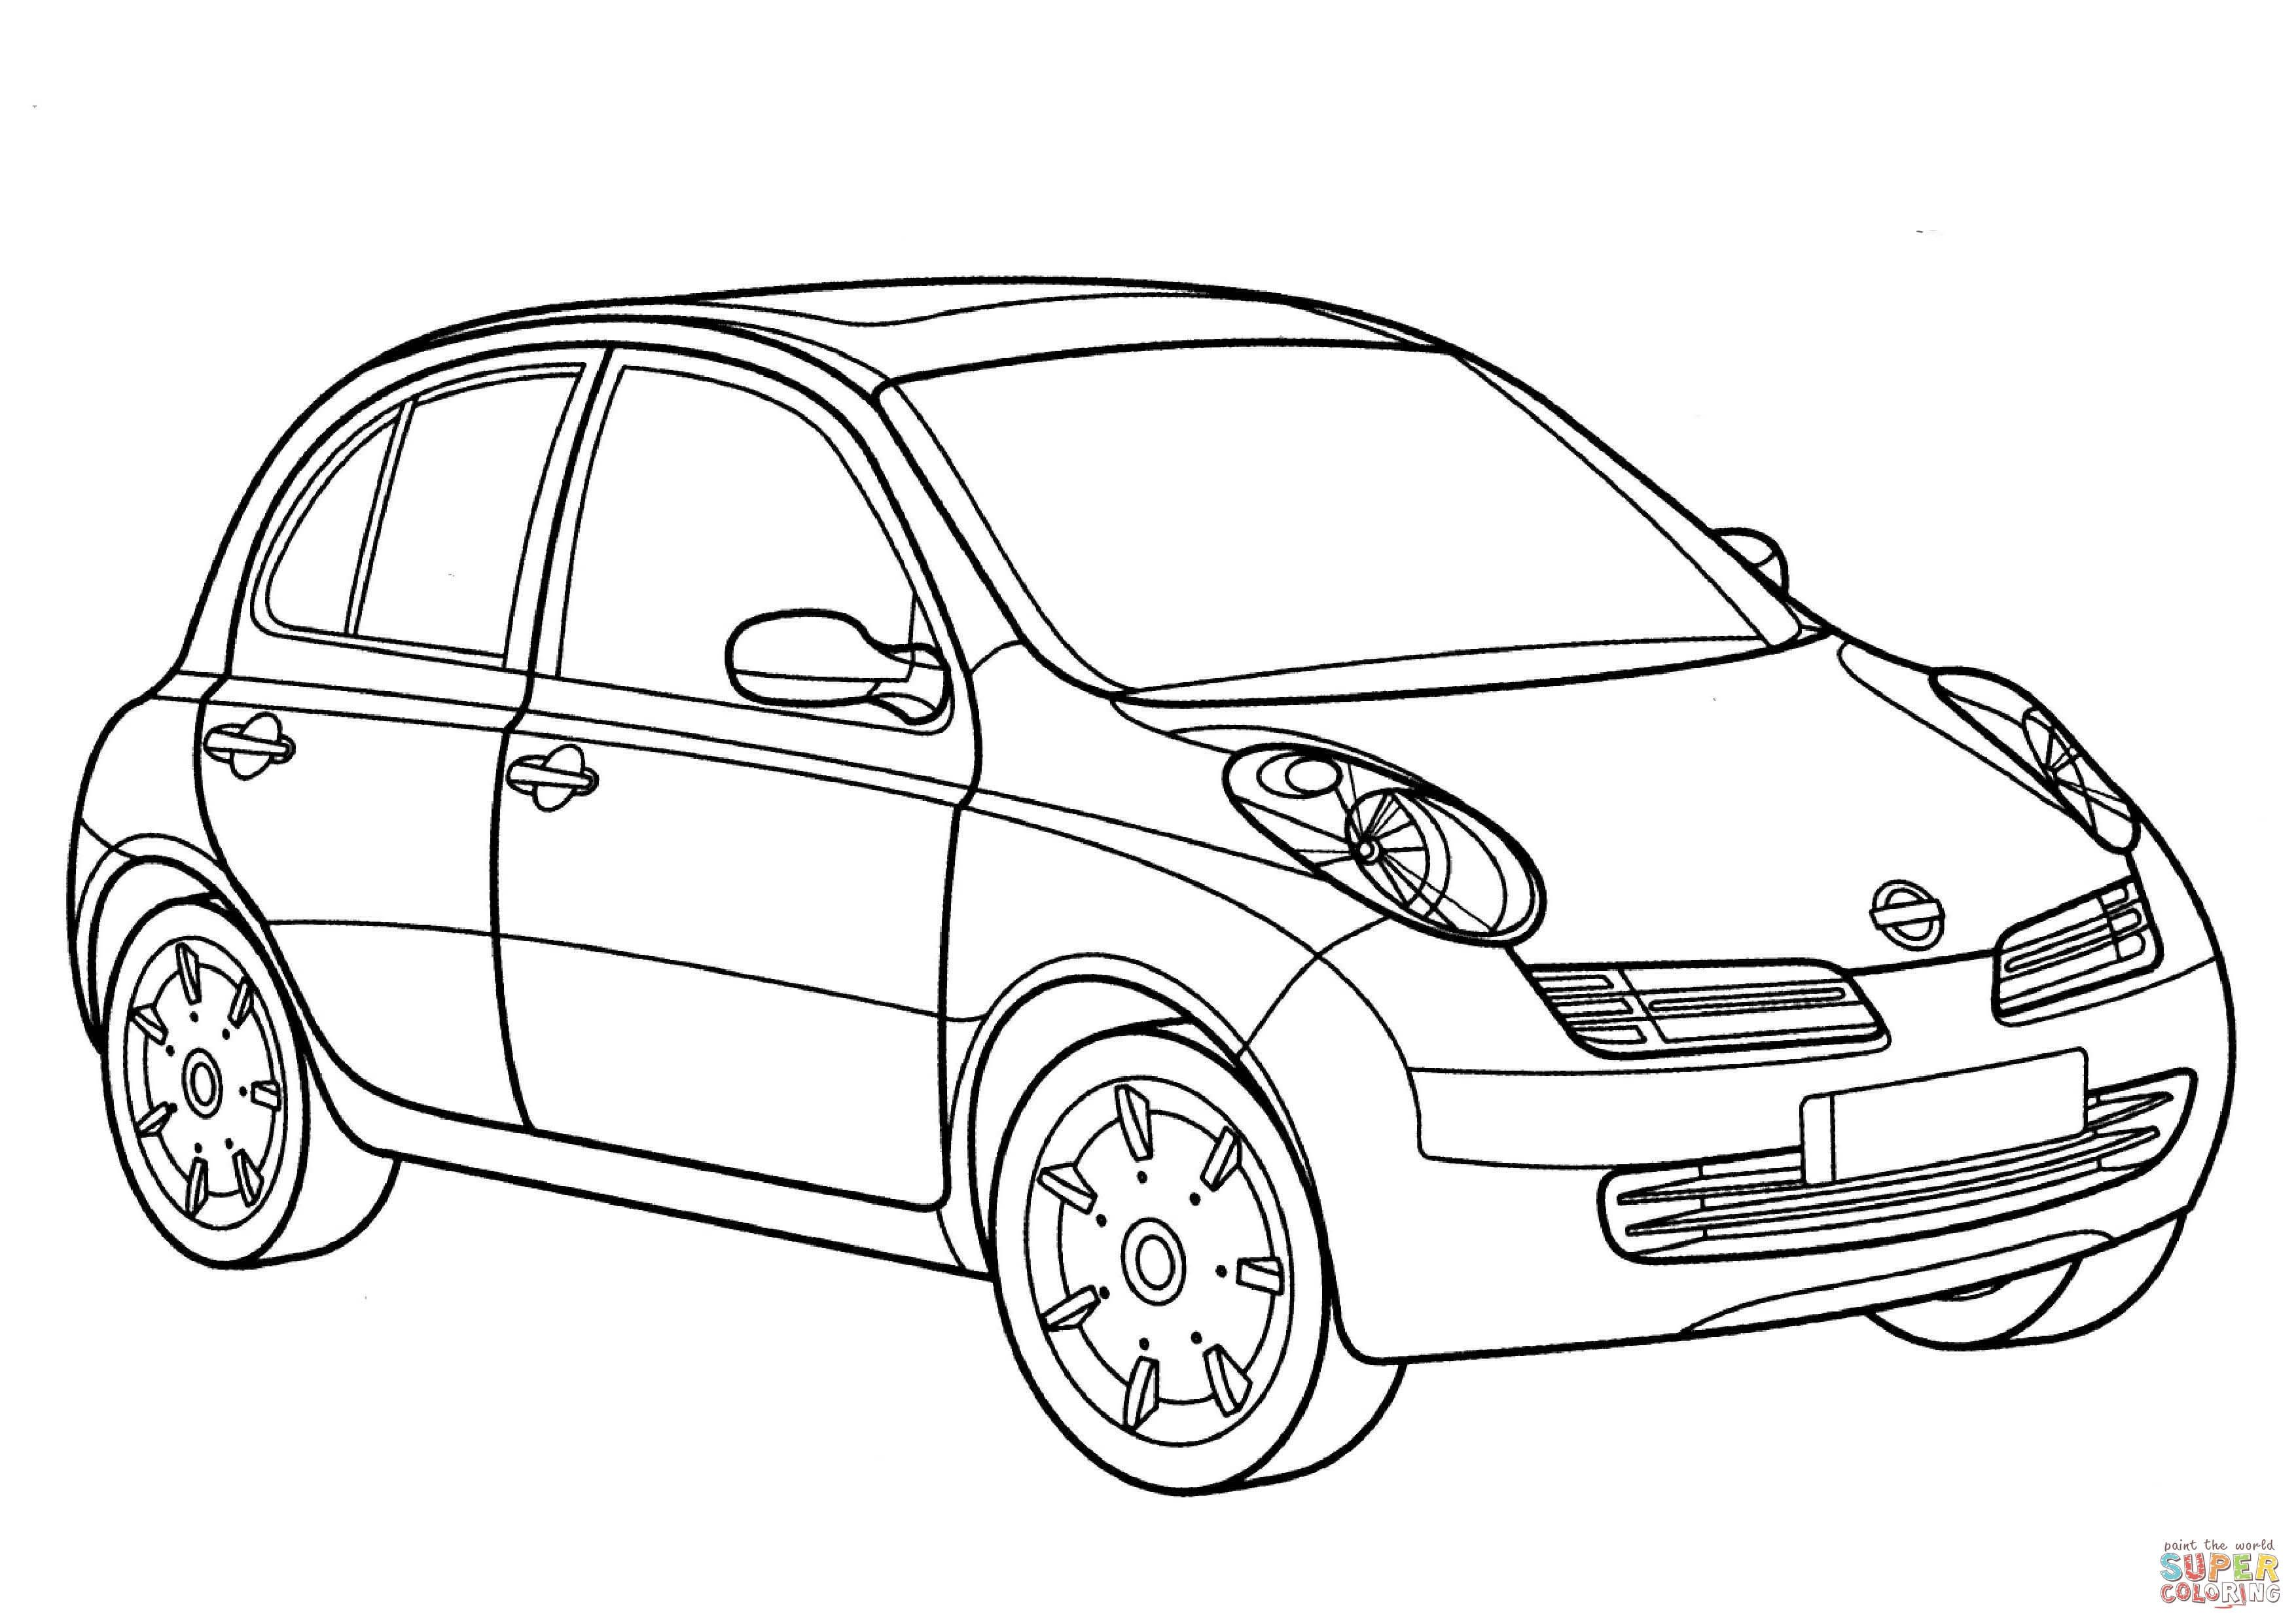 Nissan-Micra-coloring-page.jpg (3508×2480) | #nissanmicra ...